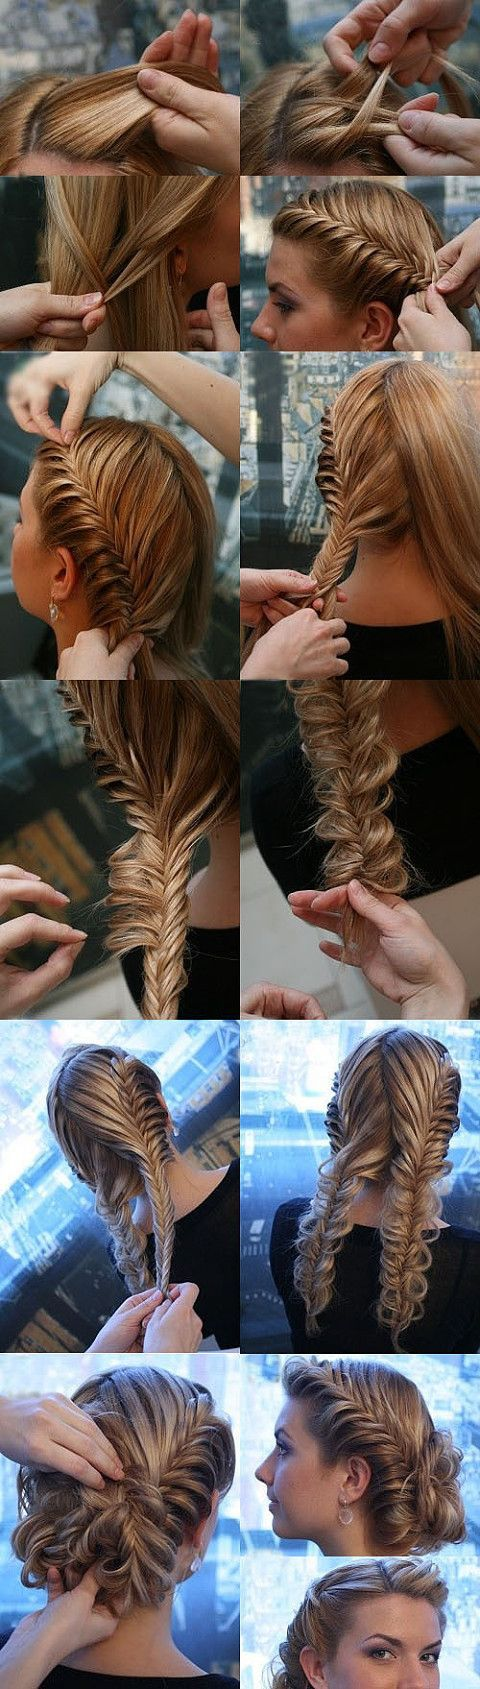 How to Make a Pretty Braid Tutorial?